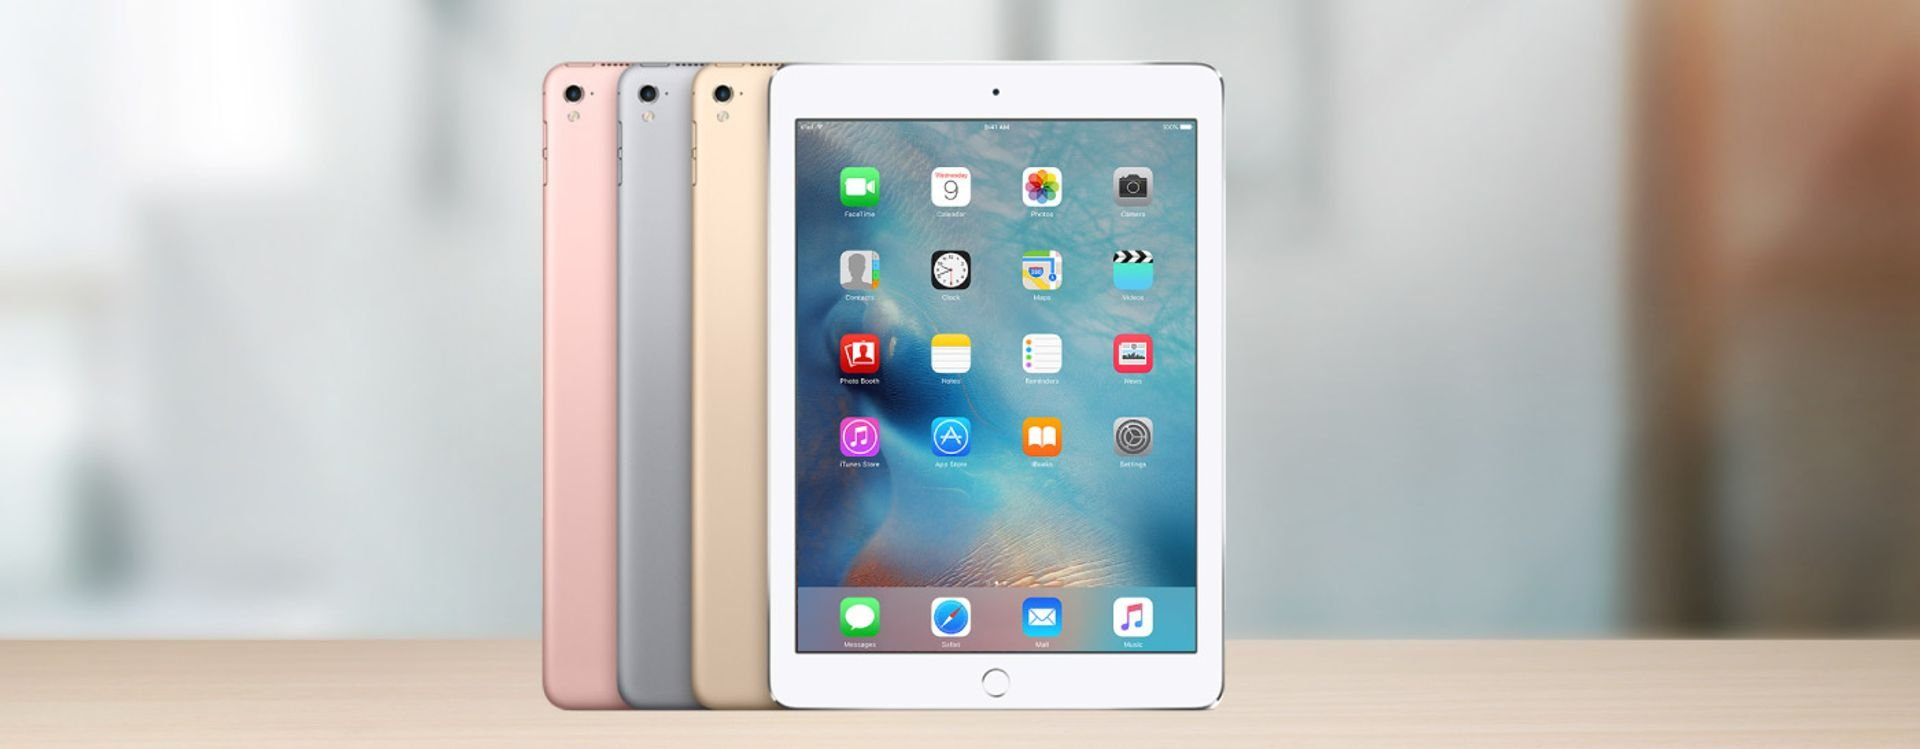 Learn about the new Tablet iPad 9.7